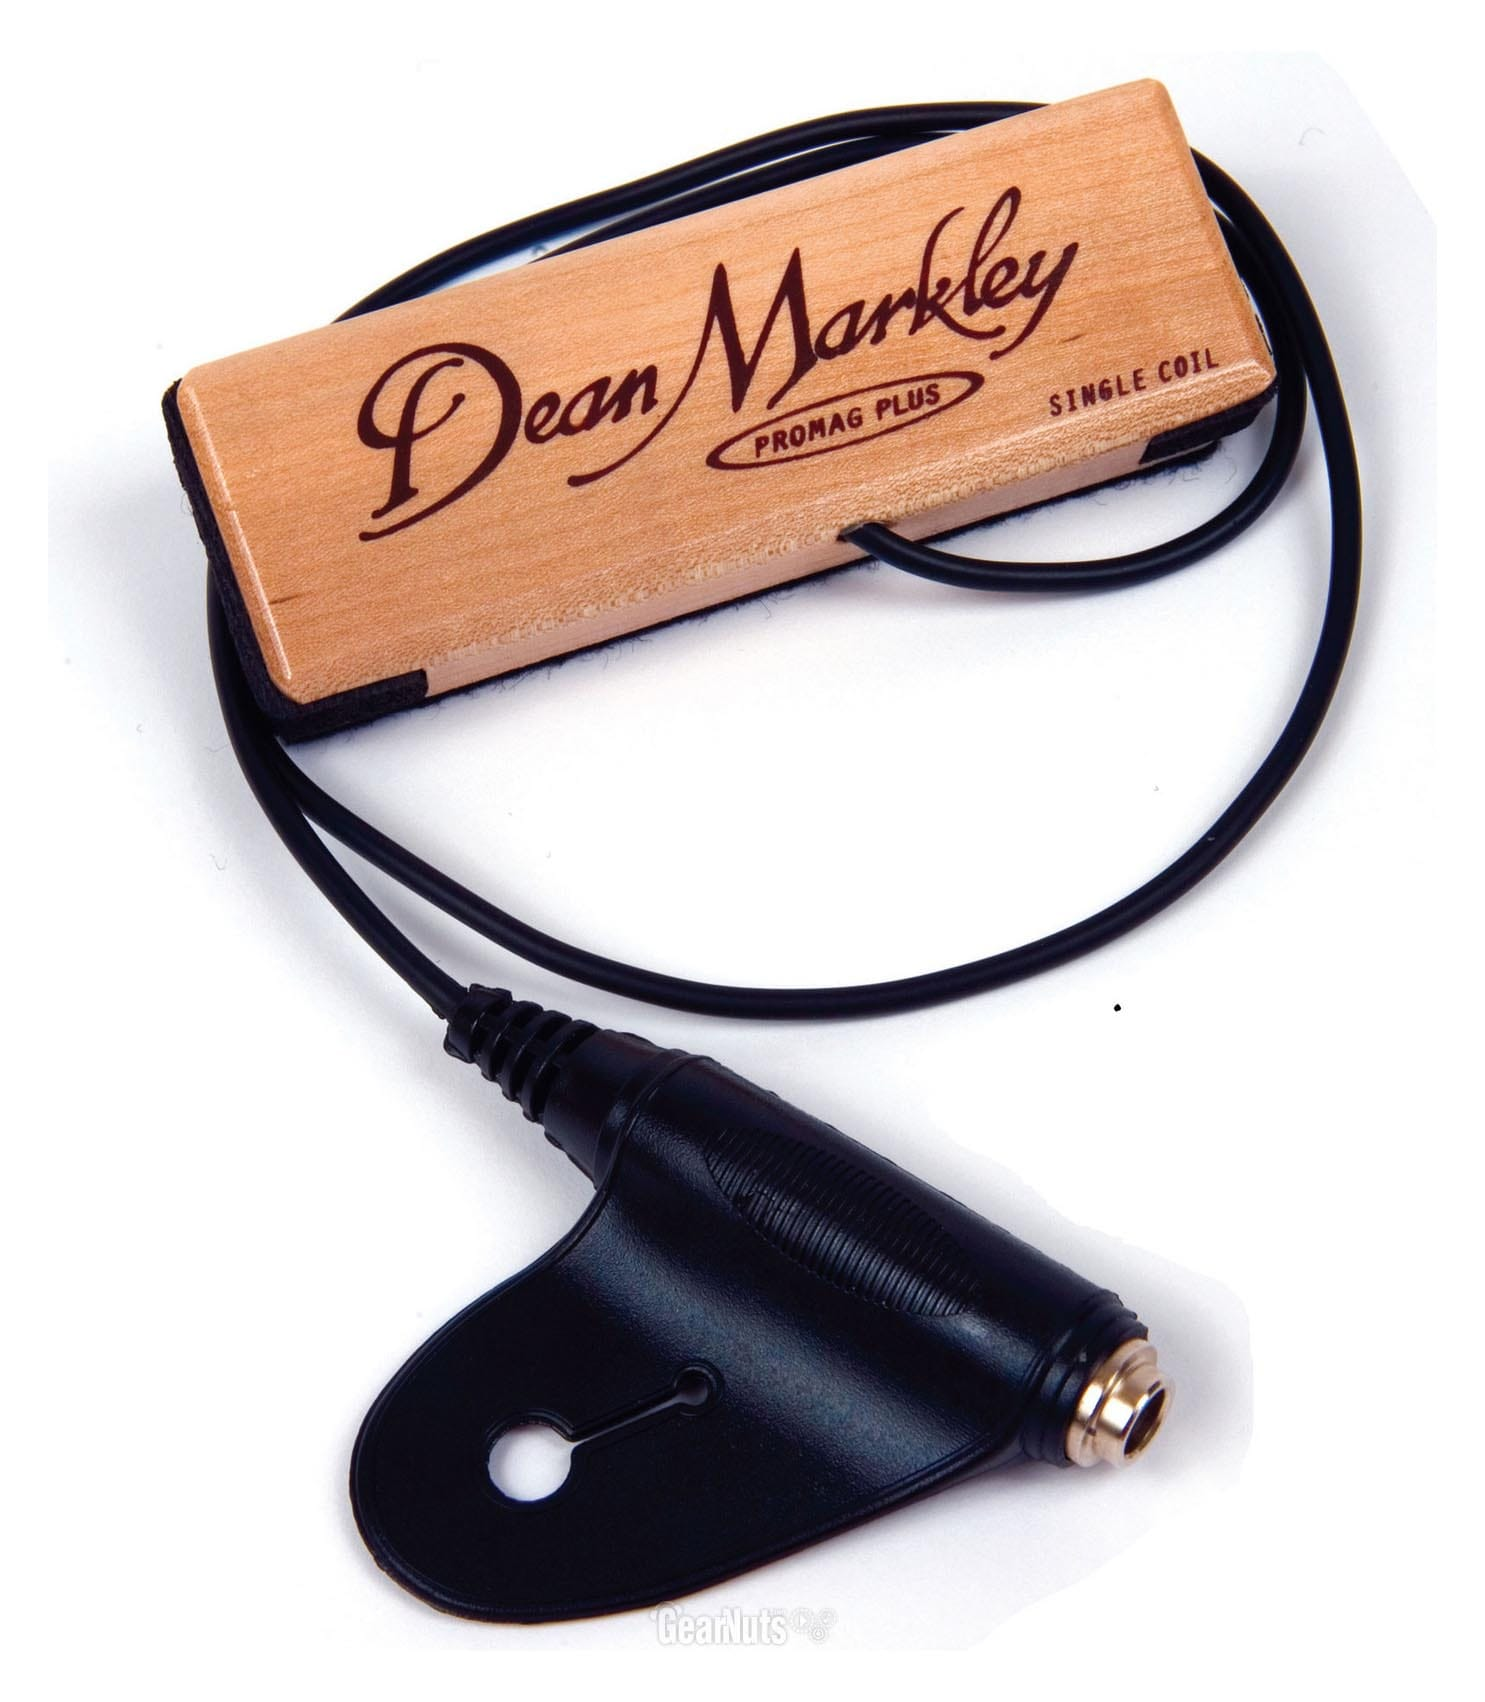 Dean Markley - 3011ProMag Plus XM 24 Cable Clip - Melody House Musical Instruments